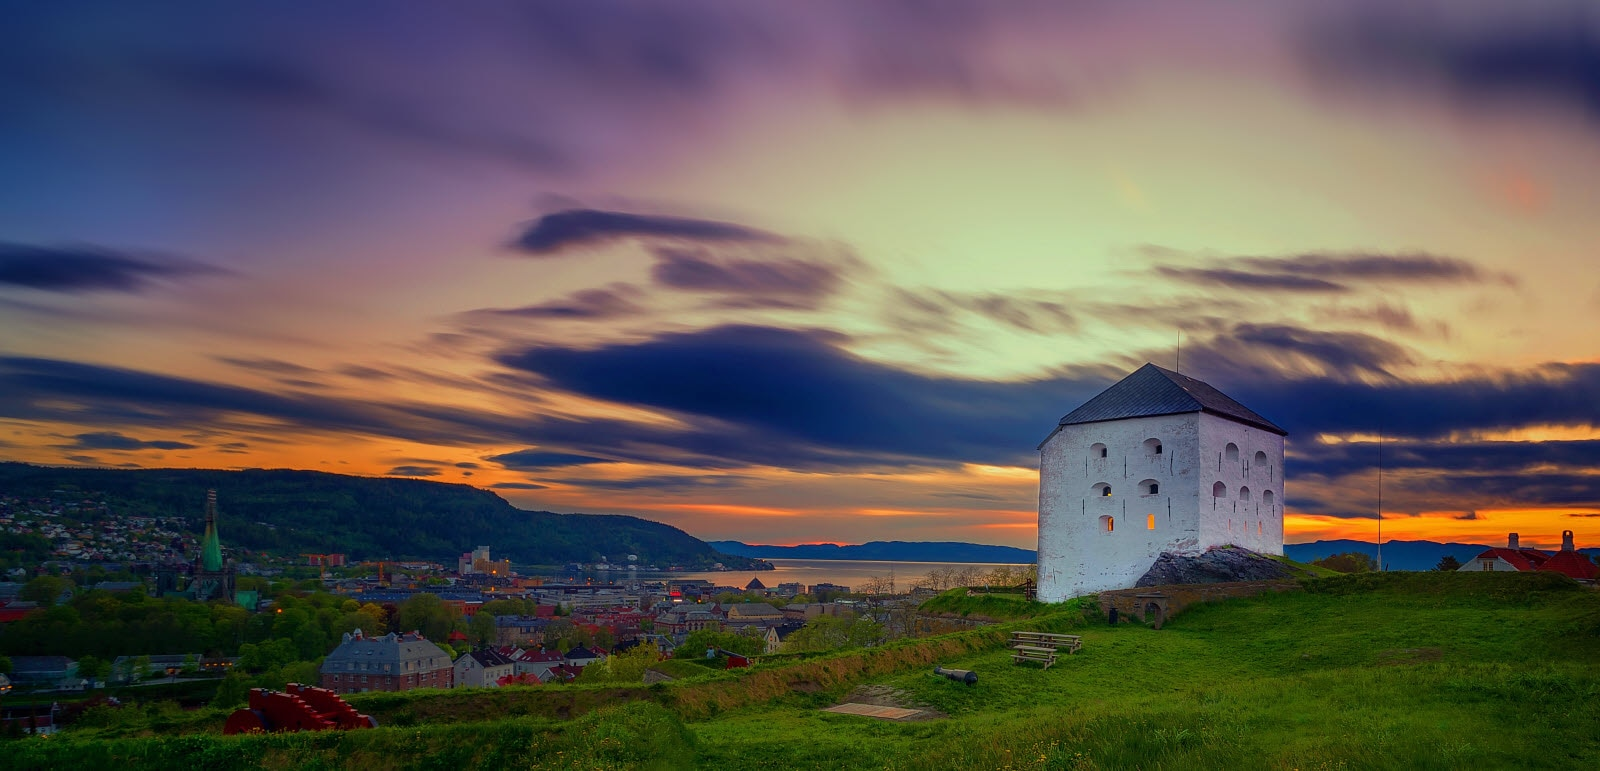 Kristiansten Fortress is located on a hill east of the city of Trondheim in Sør-Trøndelag county, Norway.